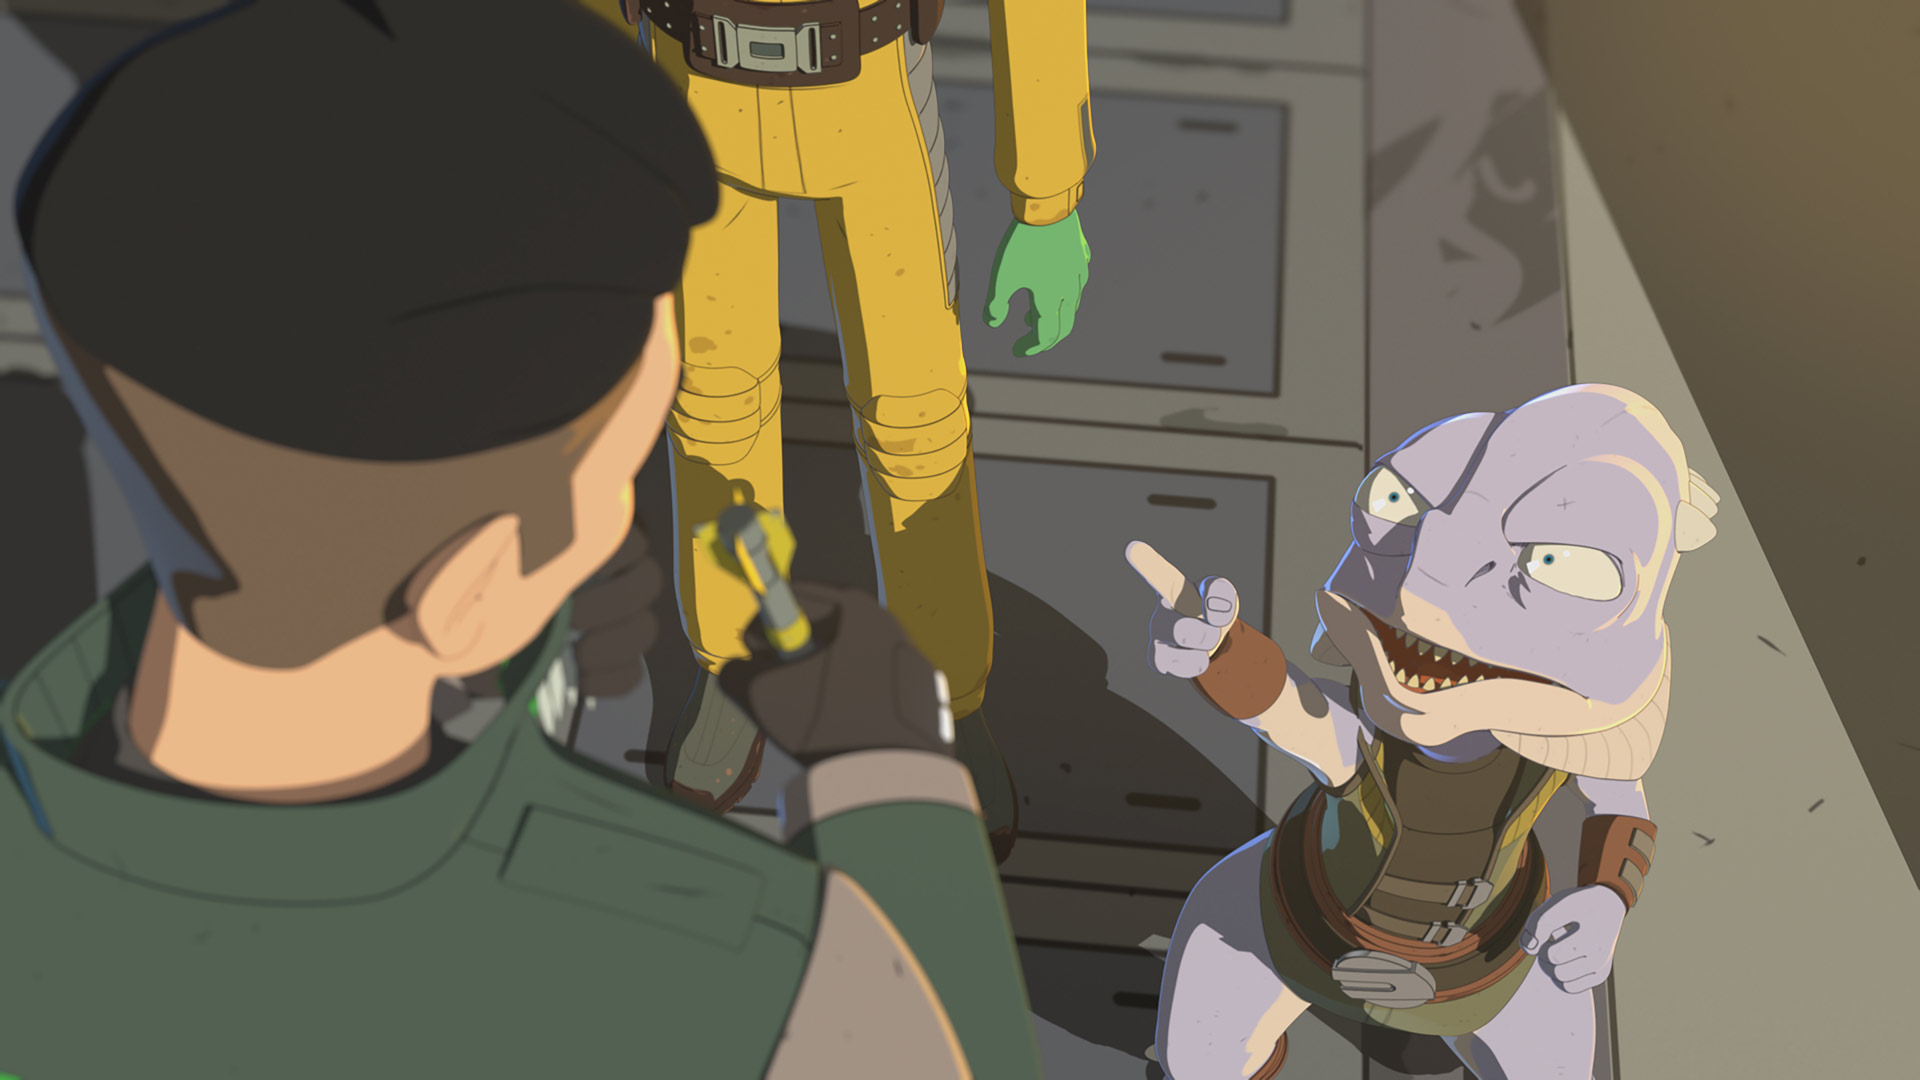 Kaz makes a new friend in Star Wars Resistance.